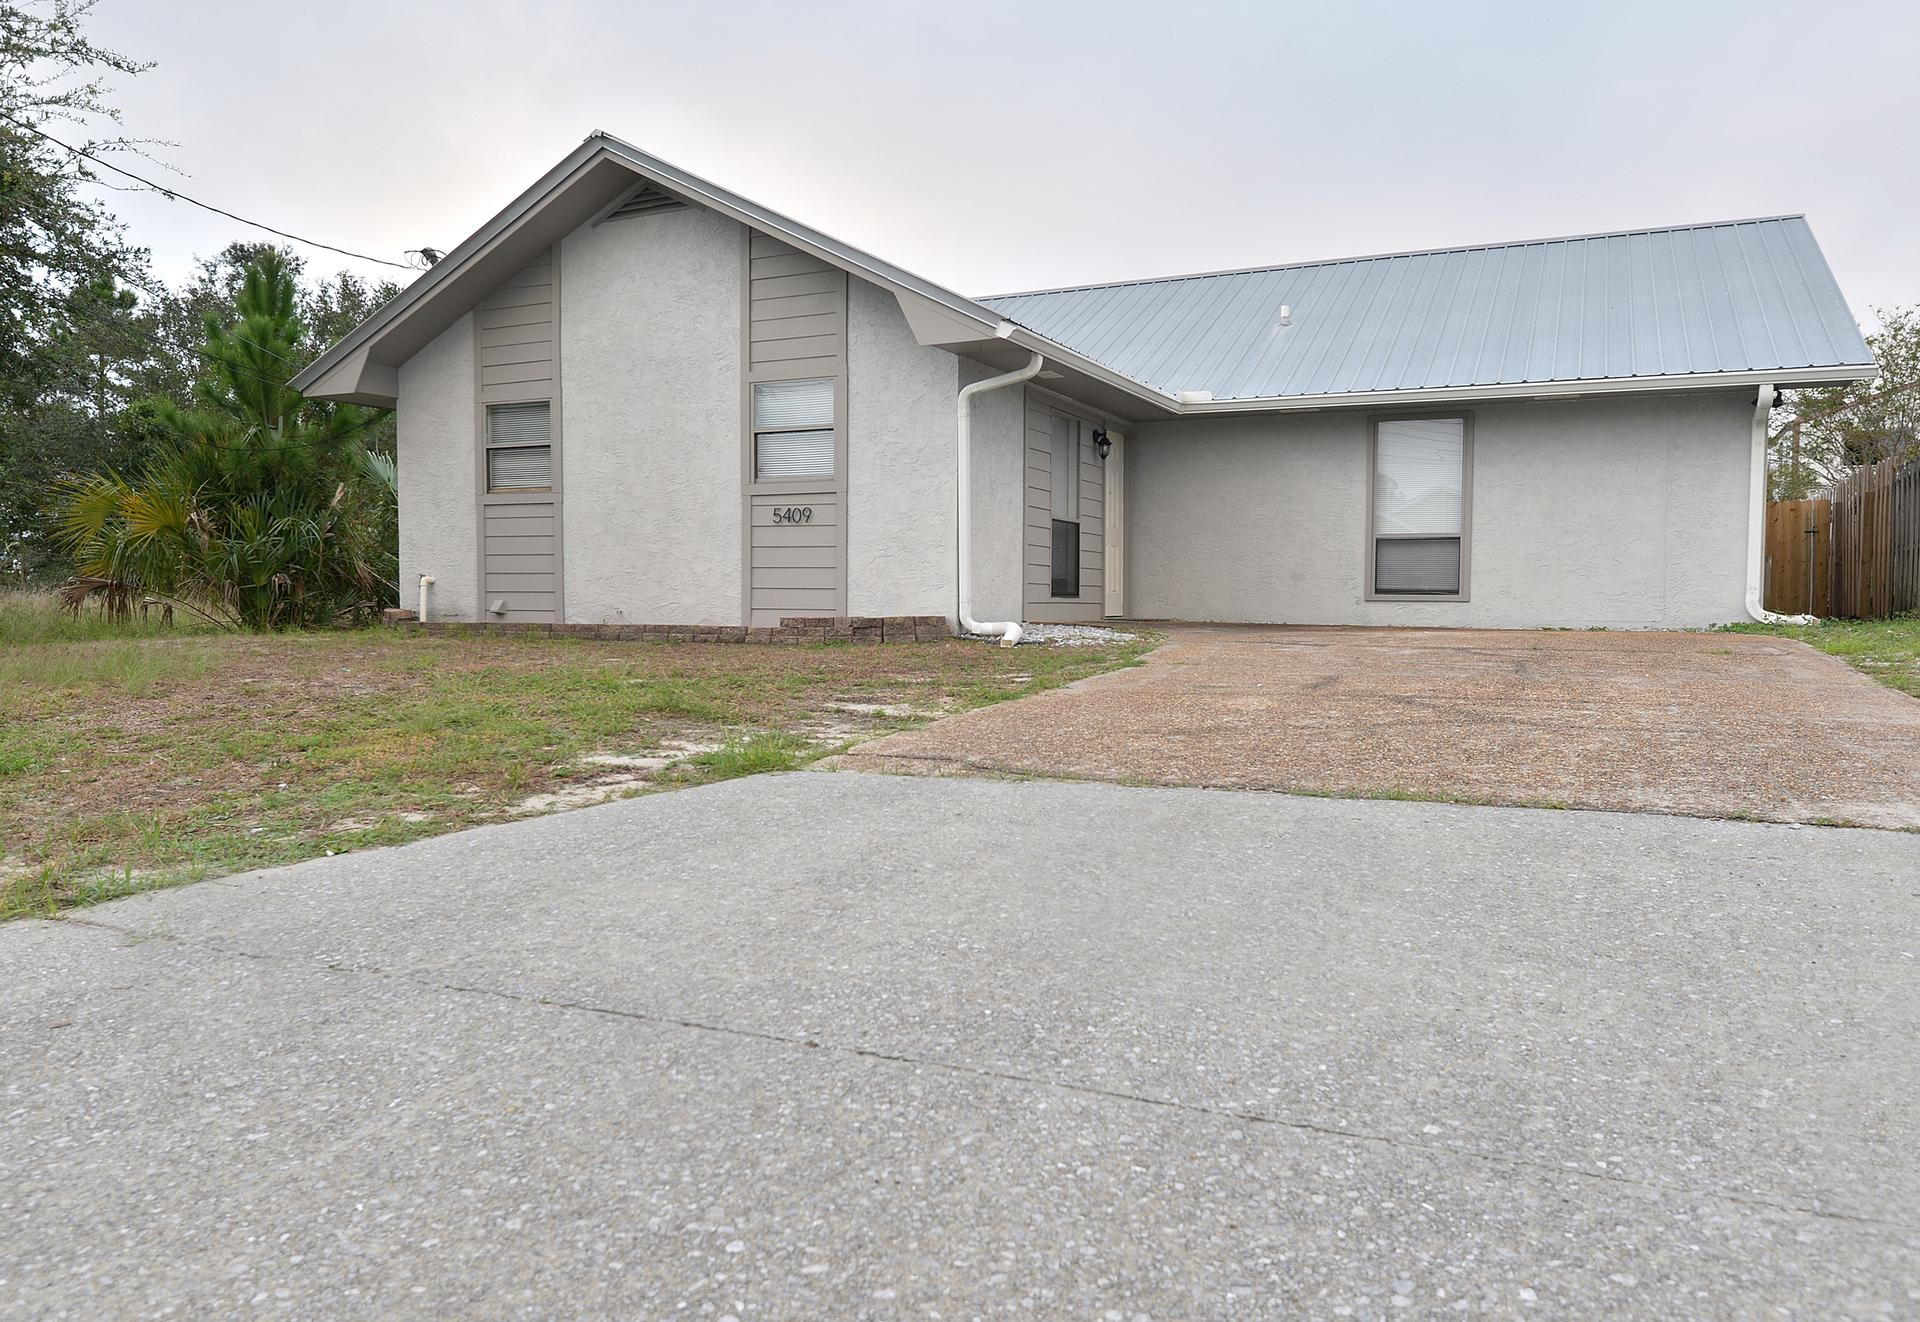 Photo of property: 5409 Pinetree Ave Panama City